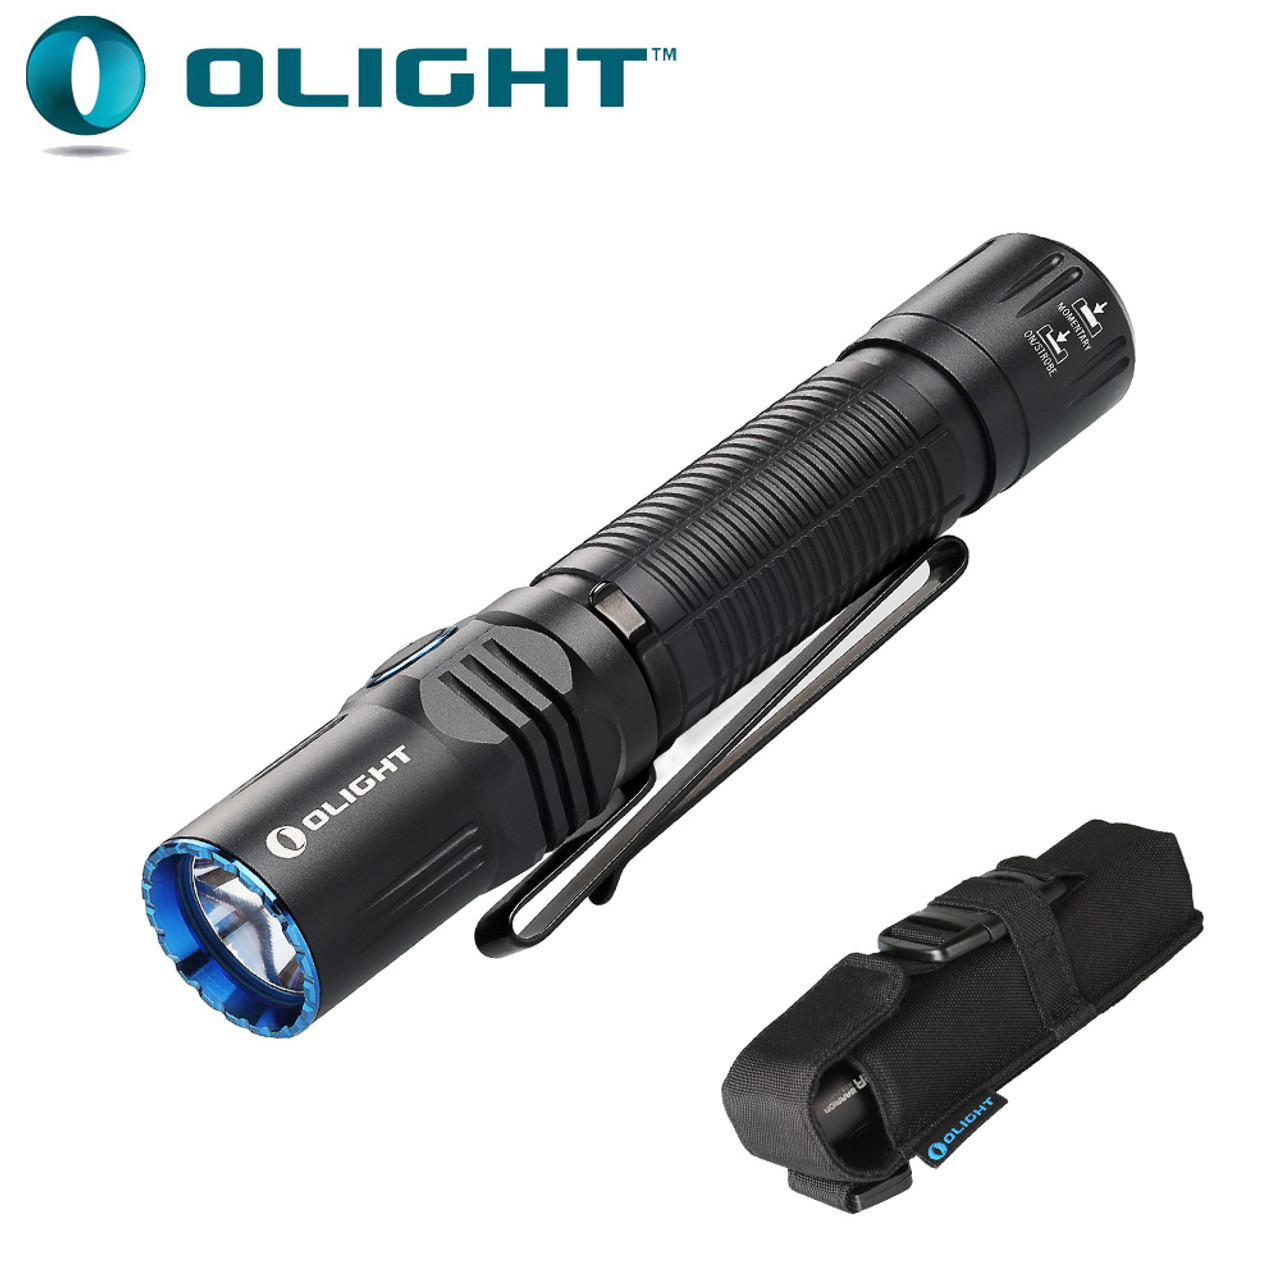 Olight H2R Nova NW 18650 LED Torch 2000LM Rechargeable